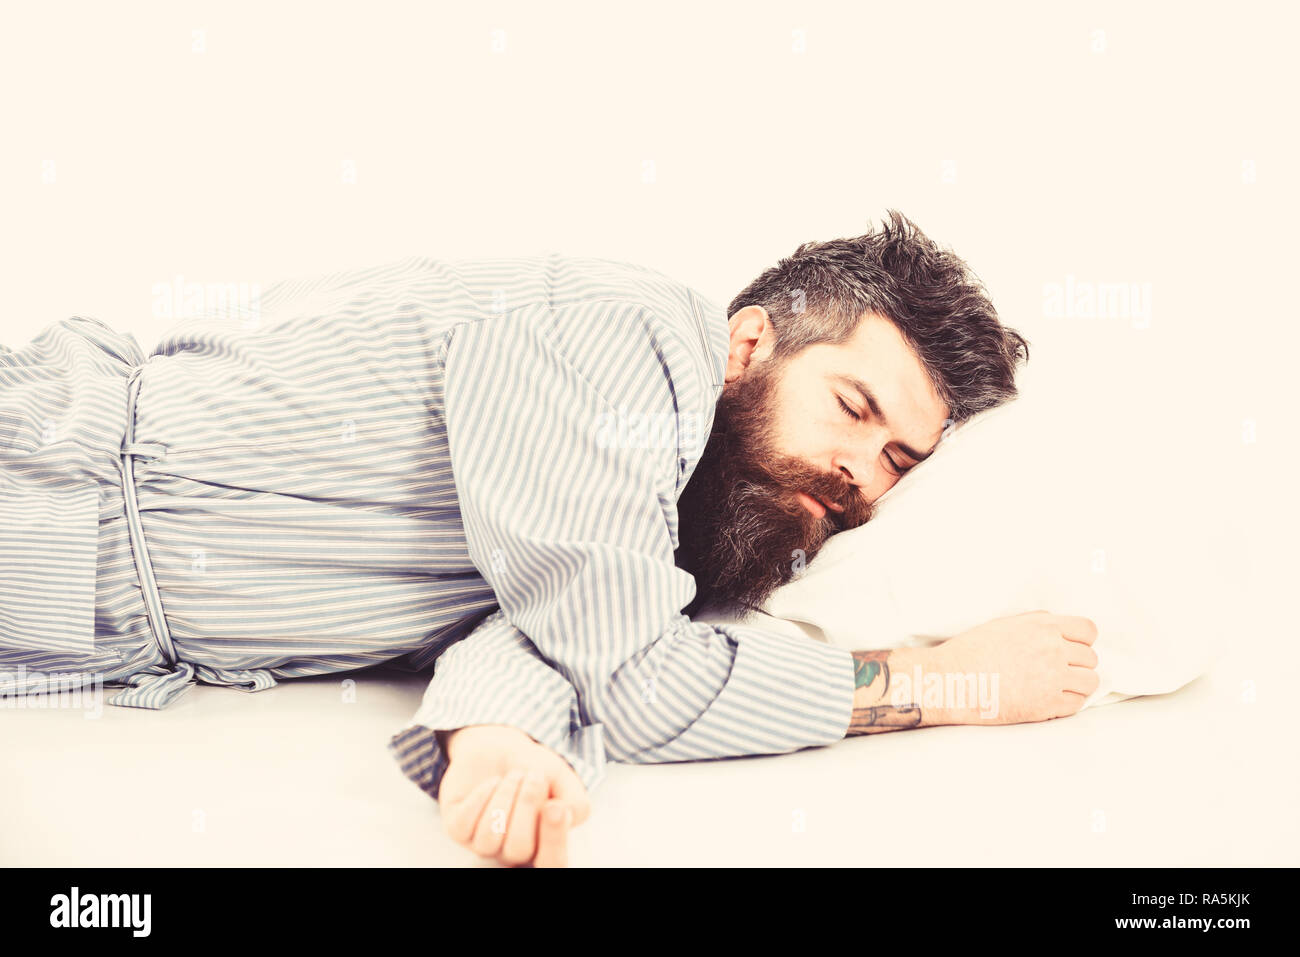 Man with relaxed face lies on pillow. Hipster with beard fall asleep. Fast asleep concept. Man with beard and mustache in deep sleep, white background. Hipster drowsy, wants to sleep, copy space. - Stock Image